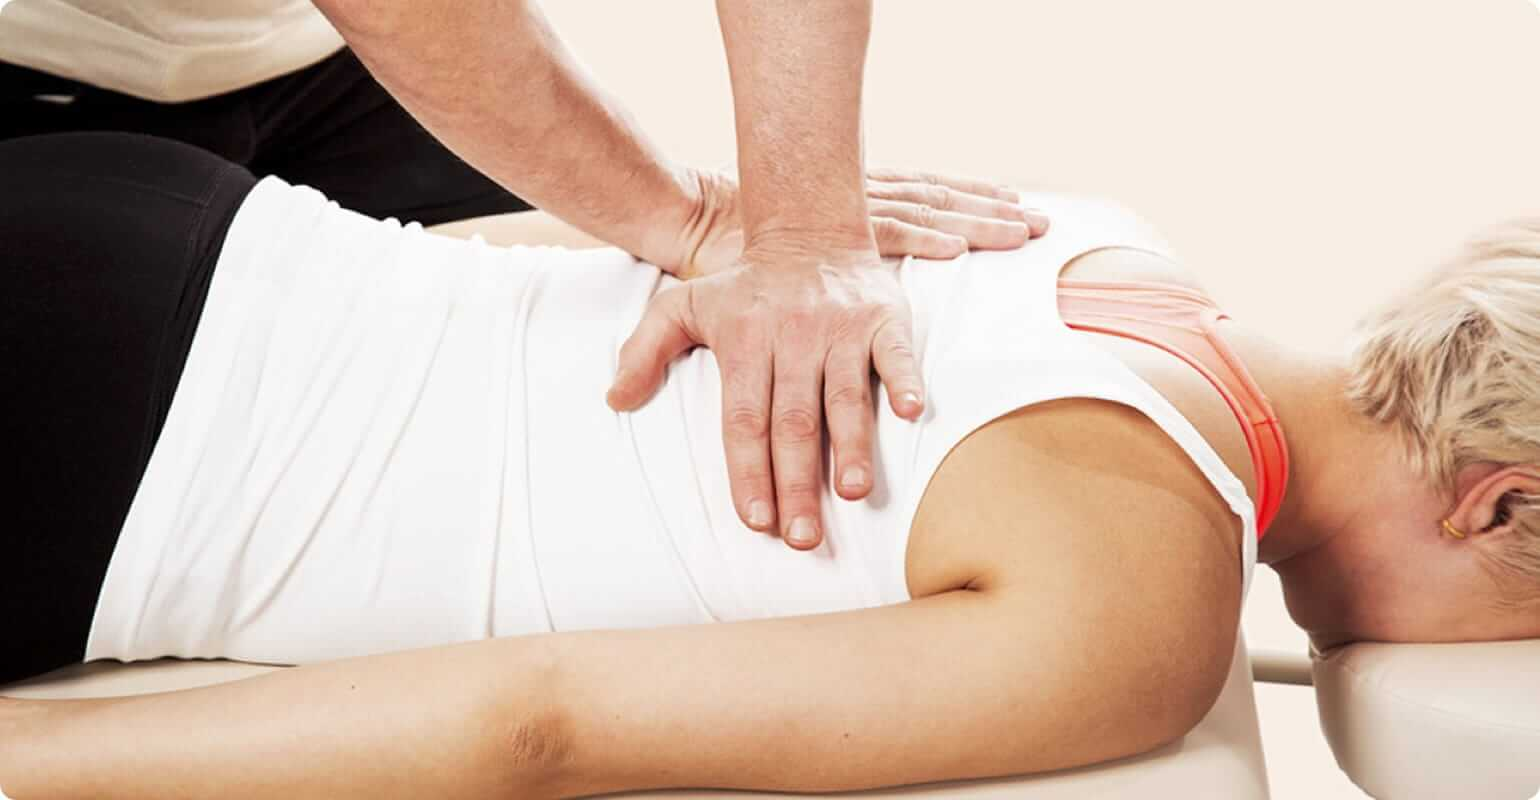 Benefits of Getting a Chiropractic Adjustment